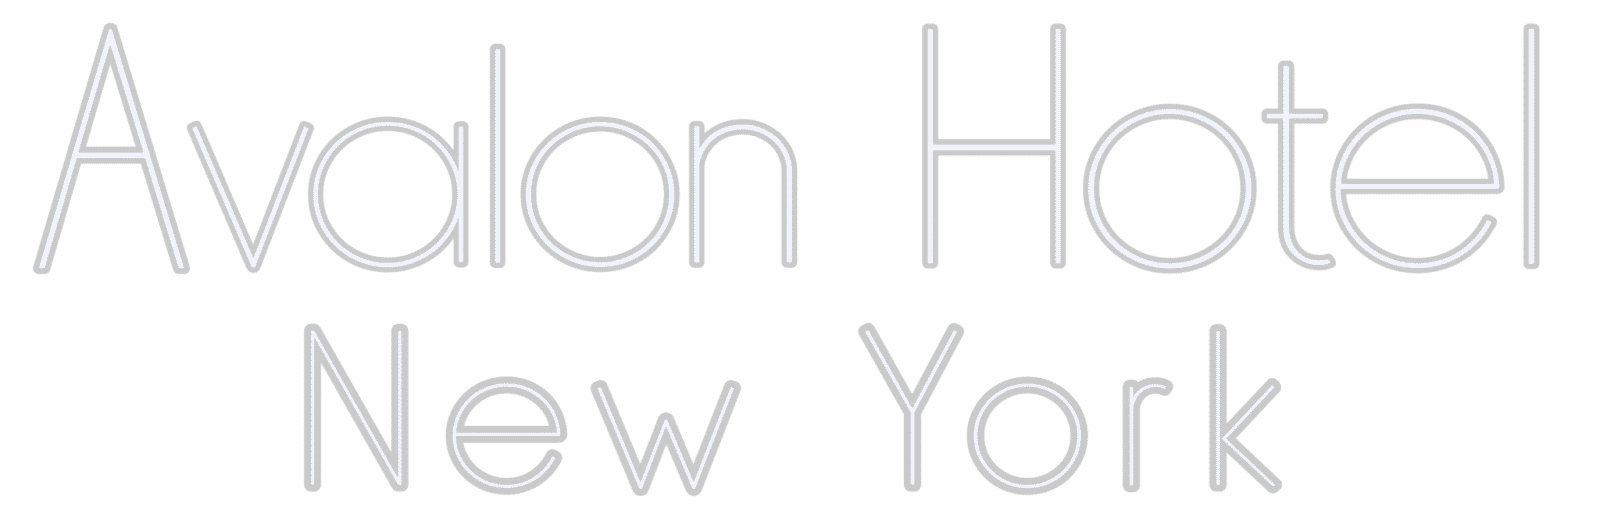 avalon hotel new york logo